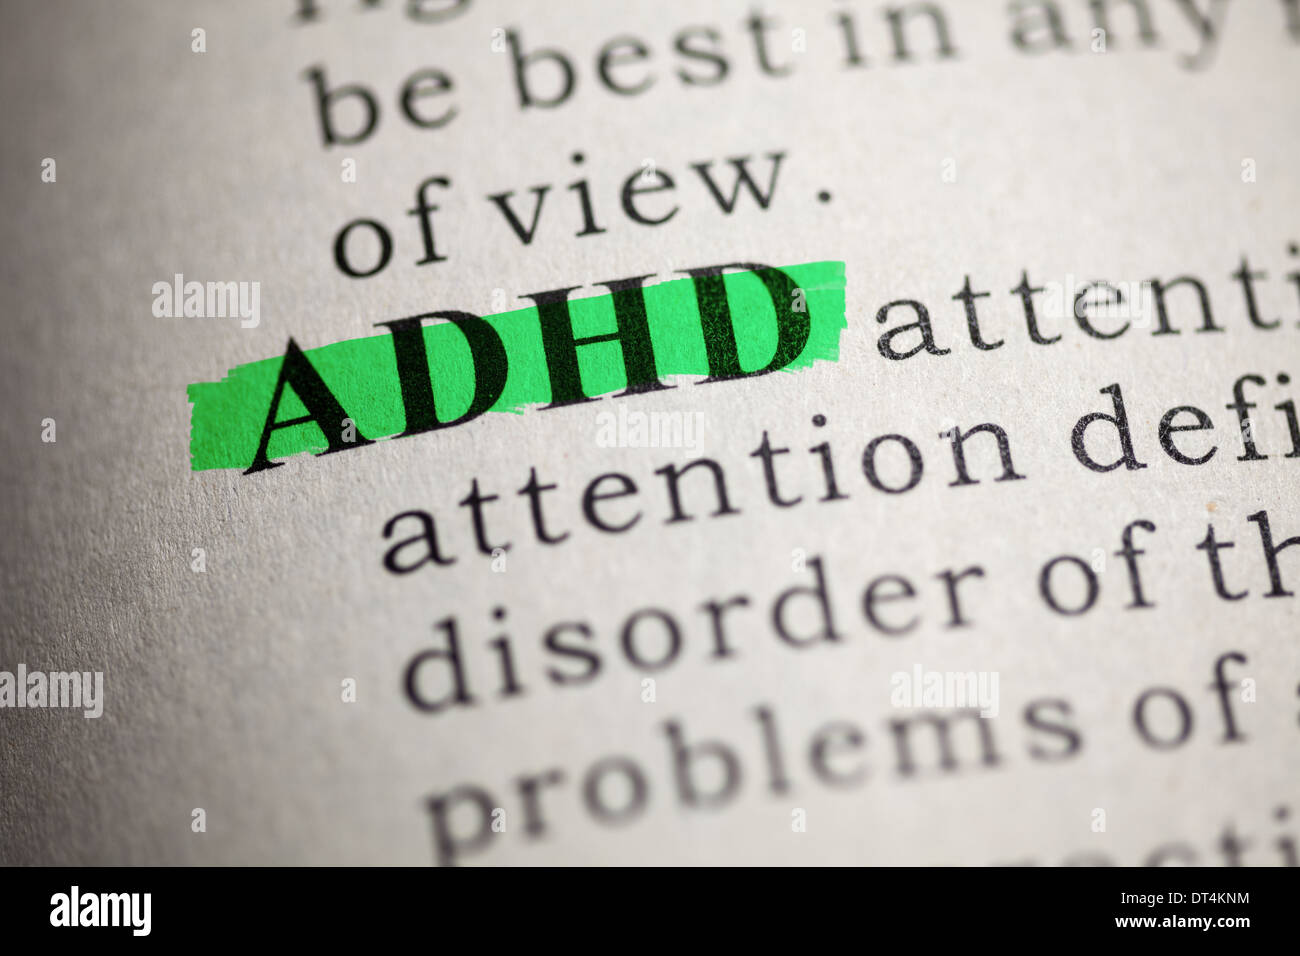 Fake Dictionary, Dictionary definition of the word ADHD. Attention deficit hyperactivity disorder - Stock Image